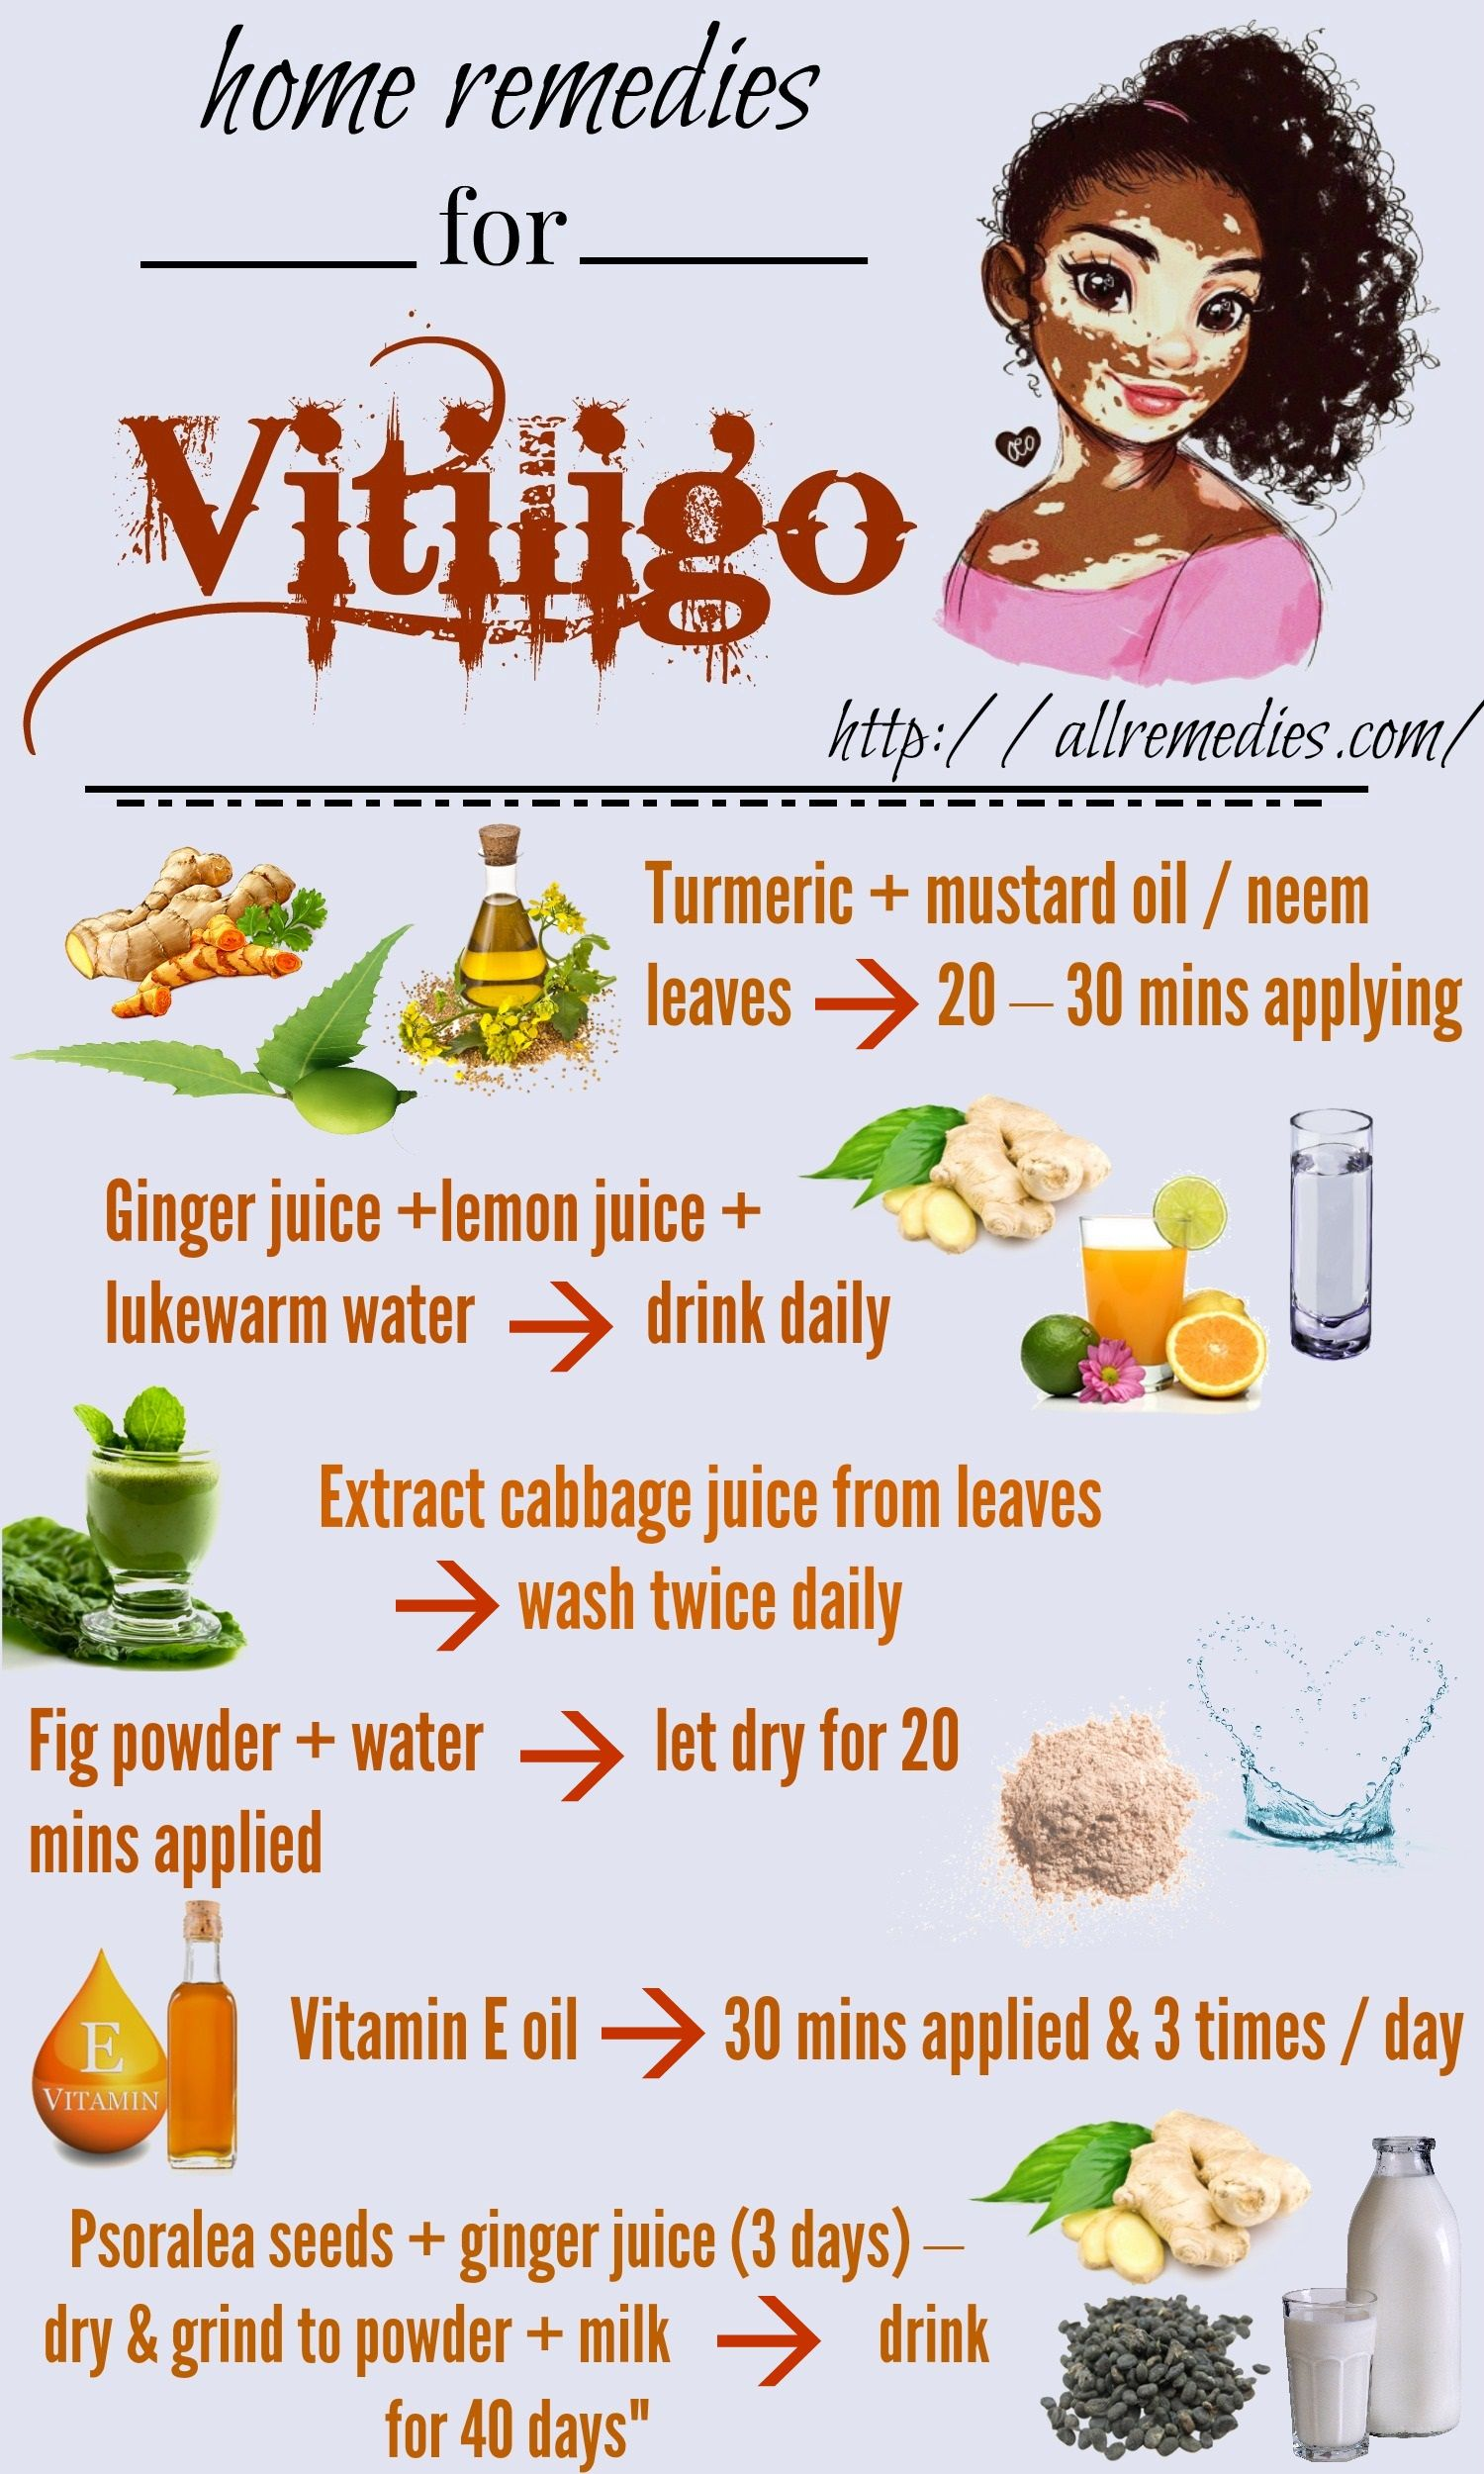 46 Natural Home Remedies For Vititligo Disease Natural Home Remedies Holistic Health Remedies Vitiligo Cure